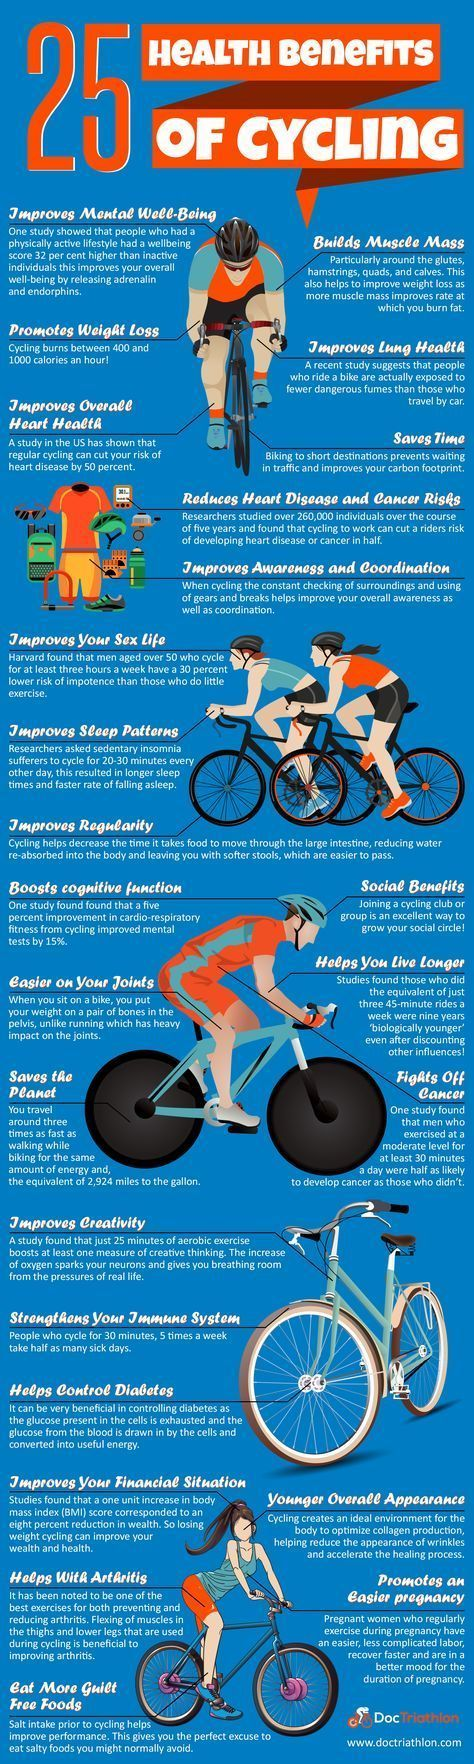 health benefits of Cycling 1